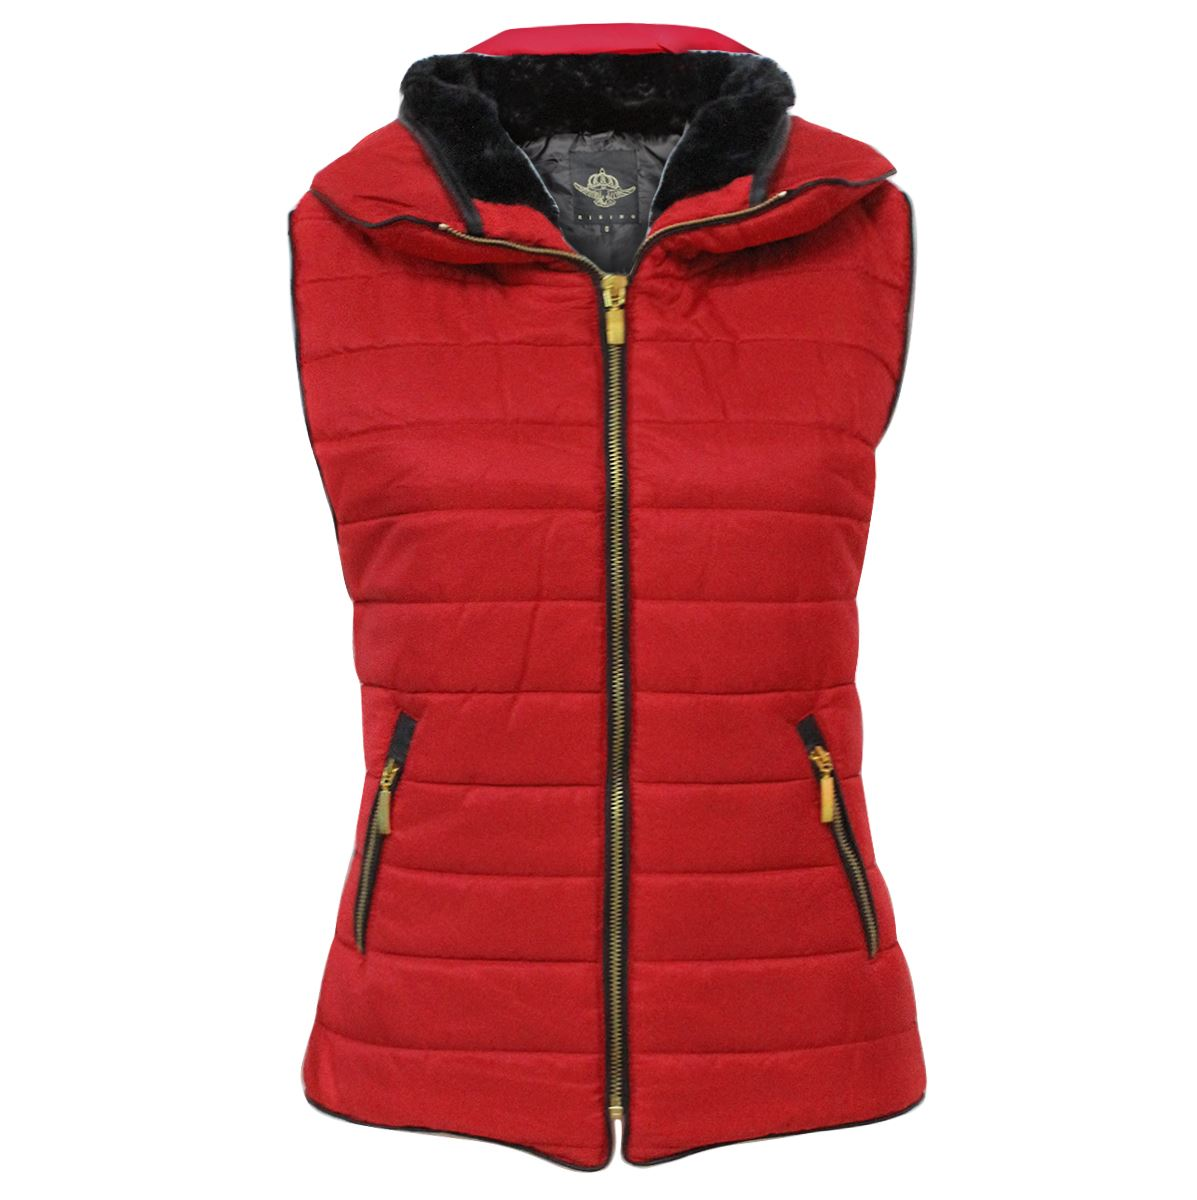 Women's Down Jackets. The down jacket is back on the fashion radar. Find a mix of styles, from understated puffas from Burberry and Canada Goose to bold printed and embroidered padded designs from Versace and Stella McCartney.